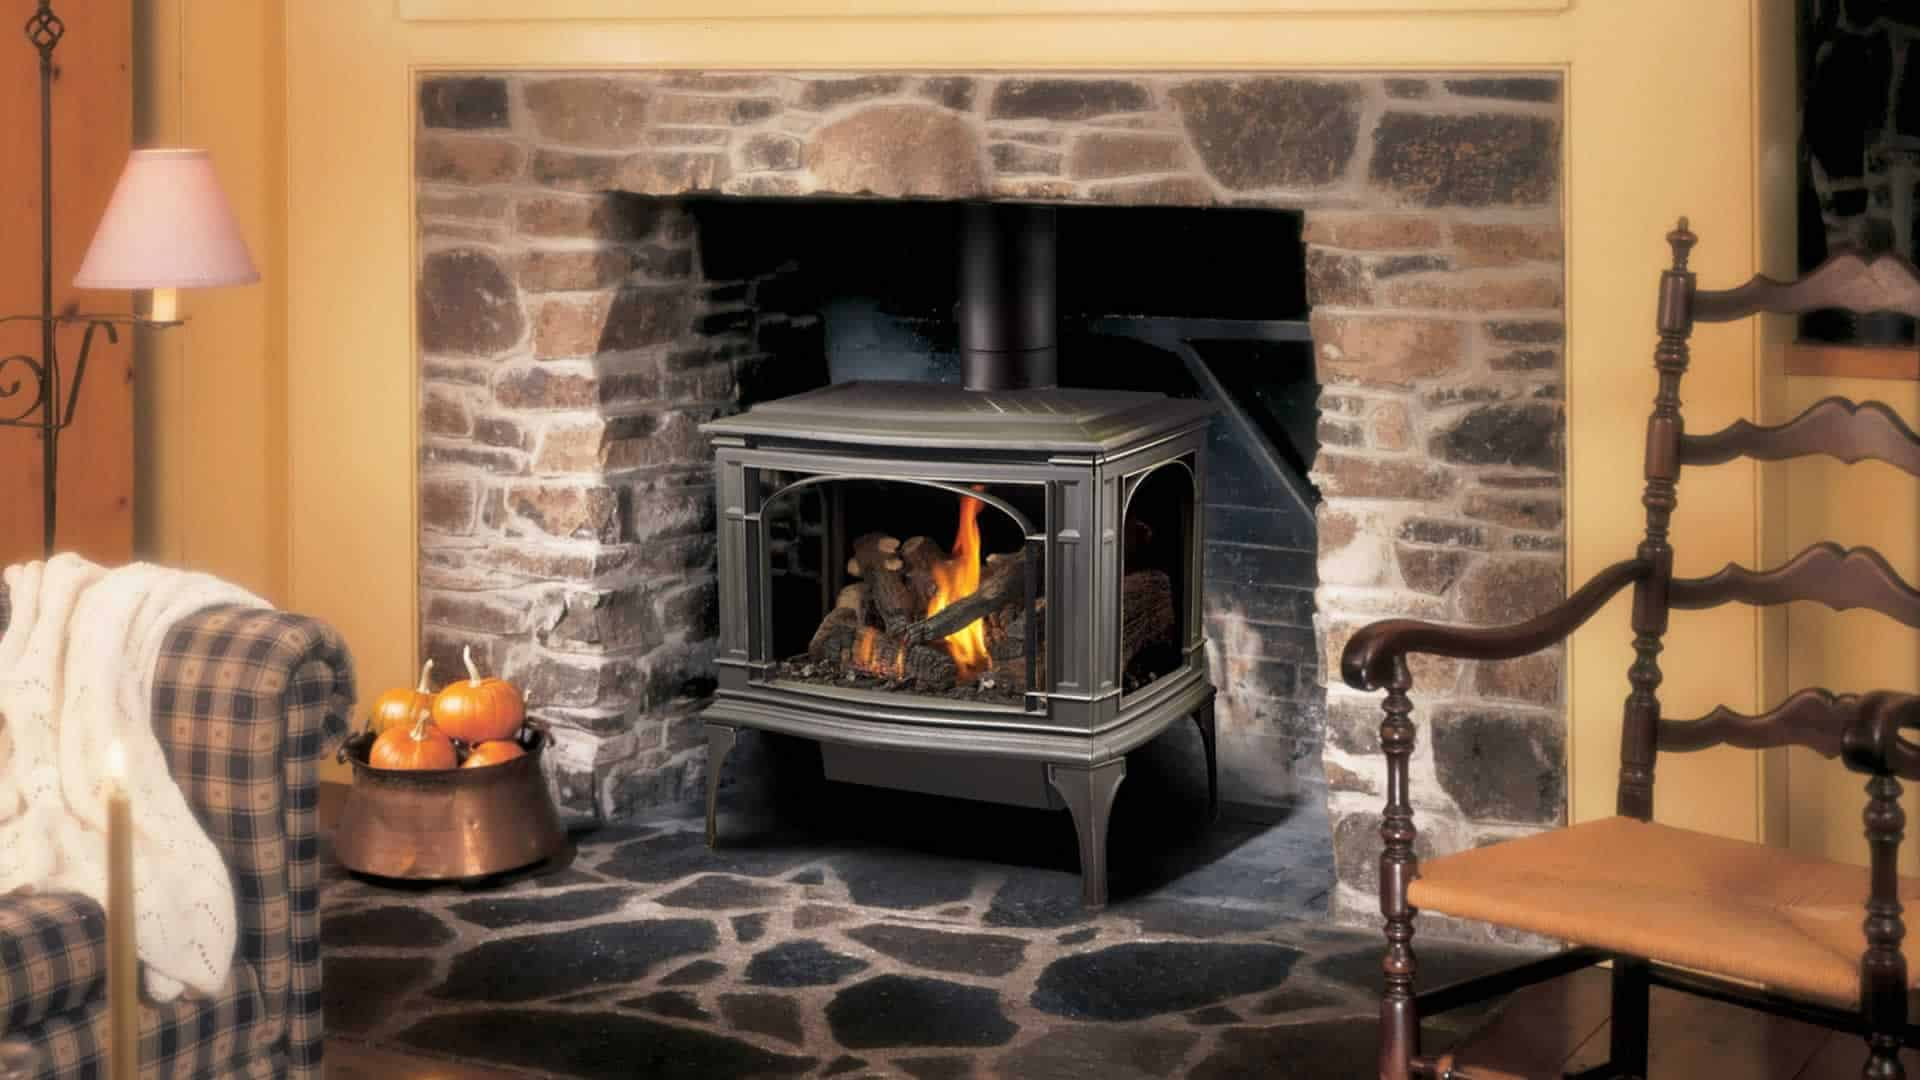 Gatherings Round the Fire - Greenfield Gas Stove 1